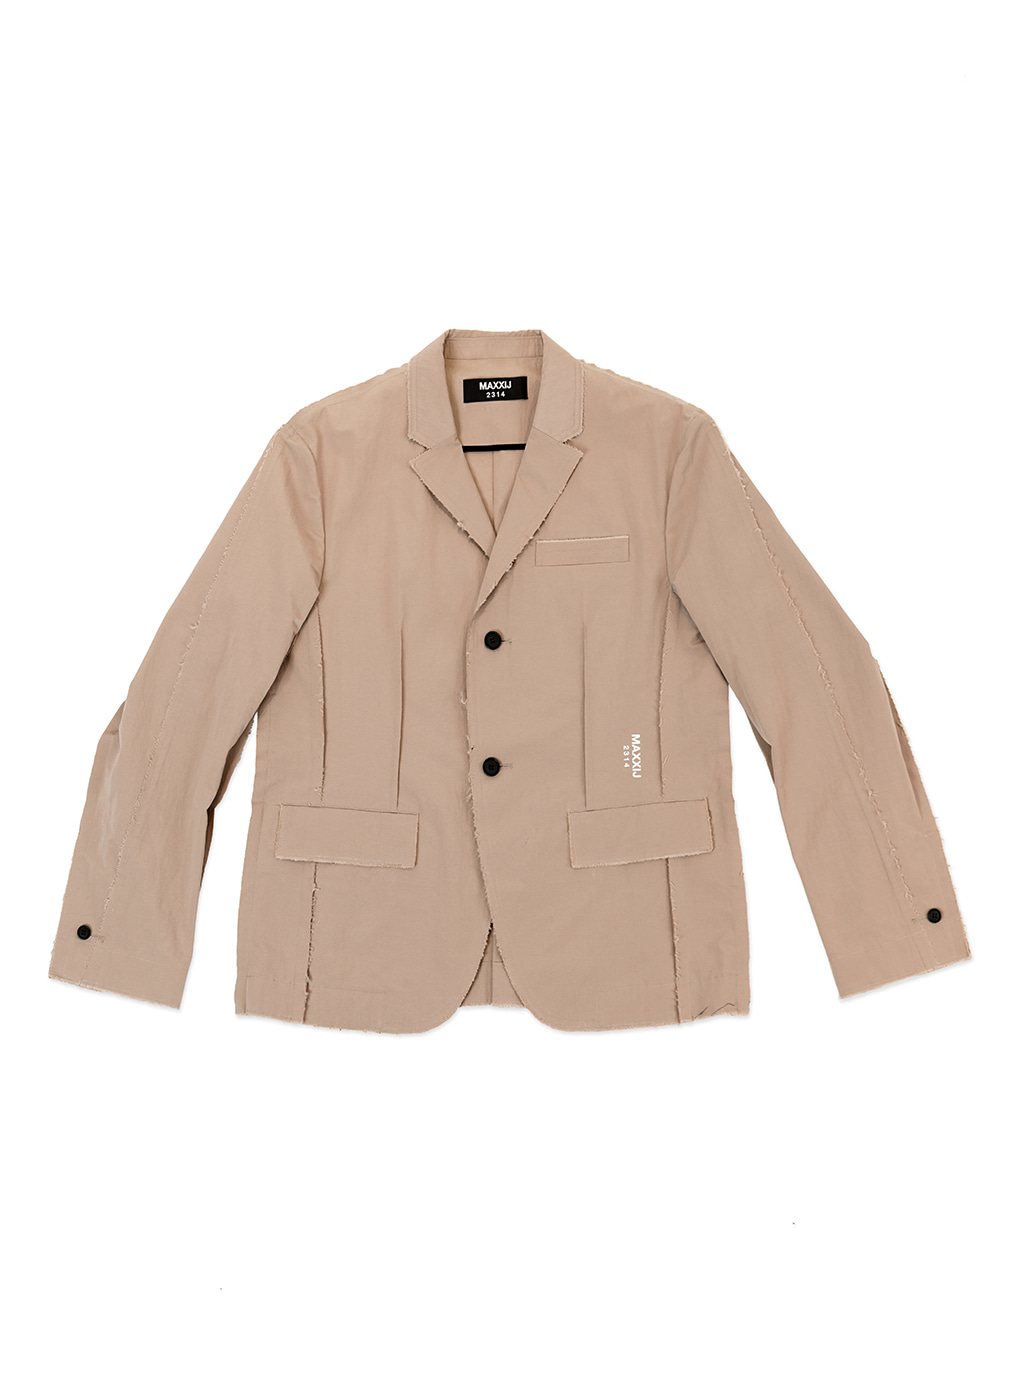 Beige Cotton Nylon Insideout Seam Binding Blazer